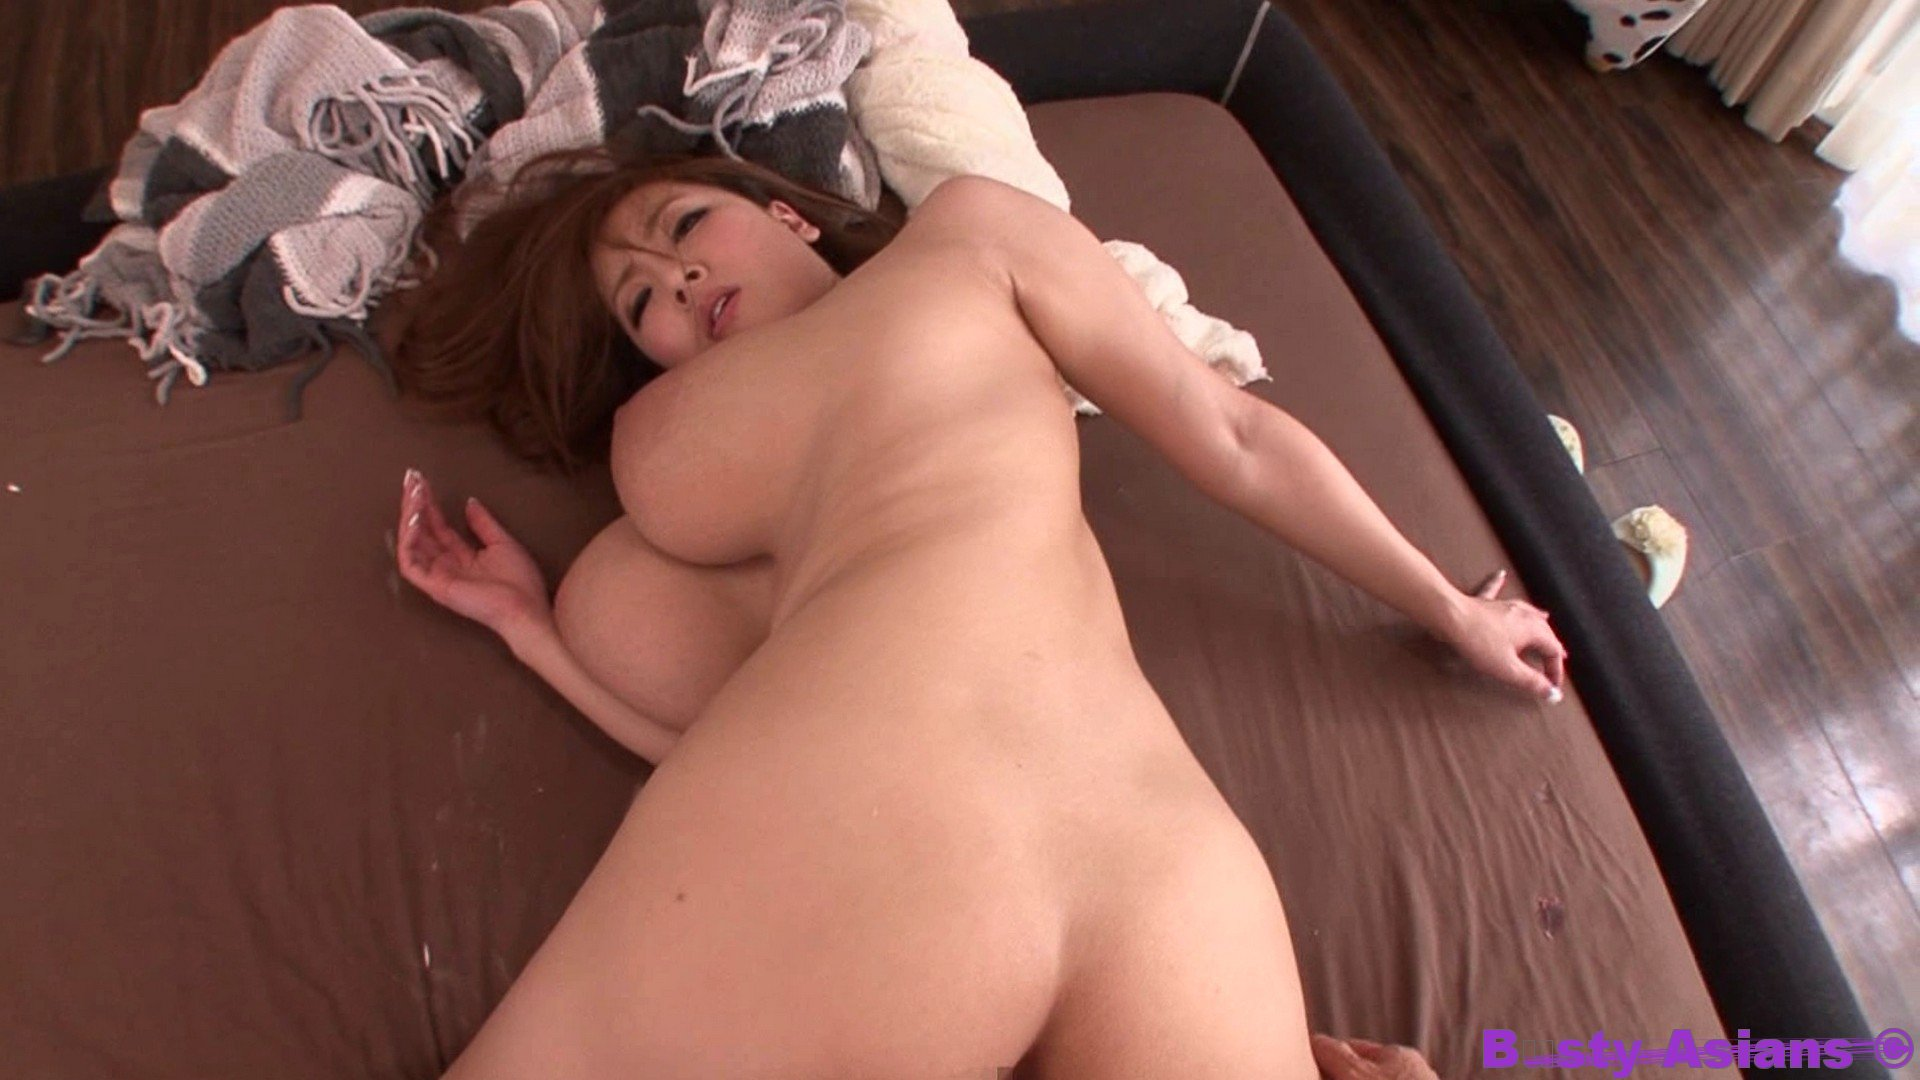 naked phat ass asian pics